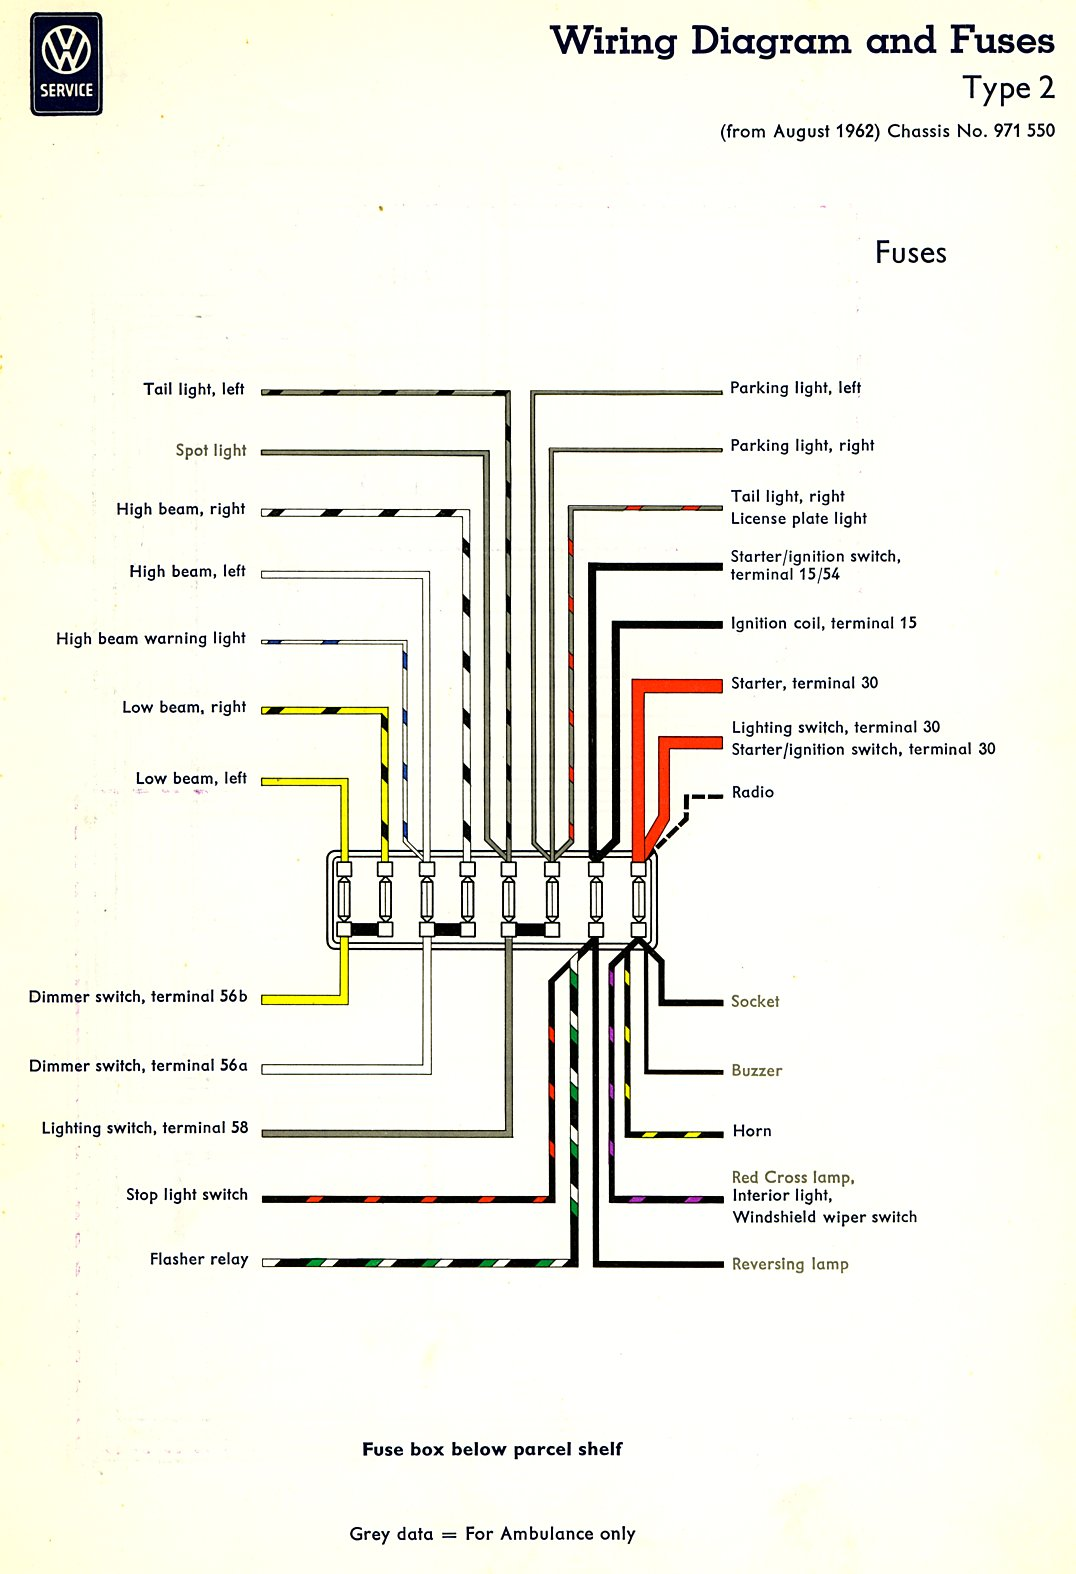 1963 Bus Wiring Diagram